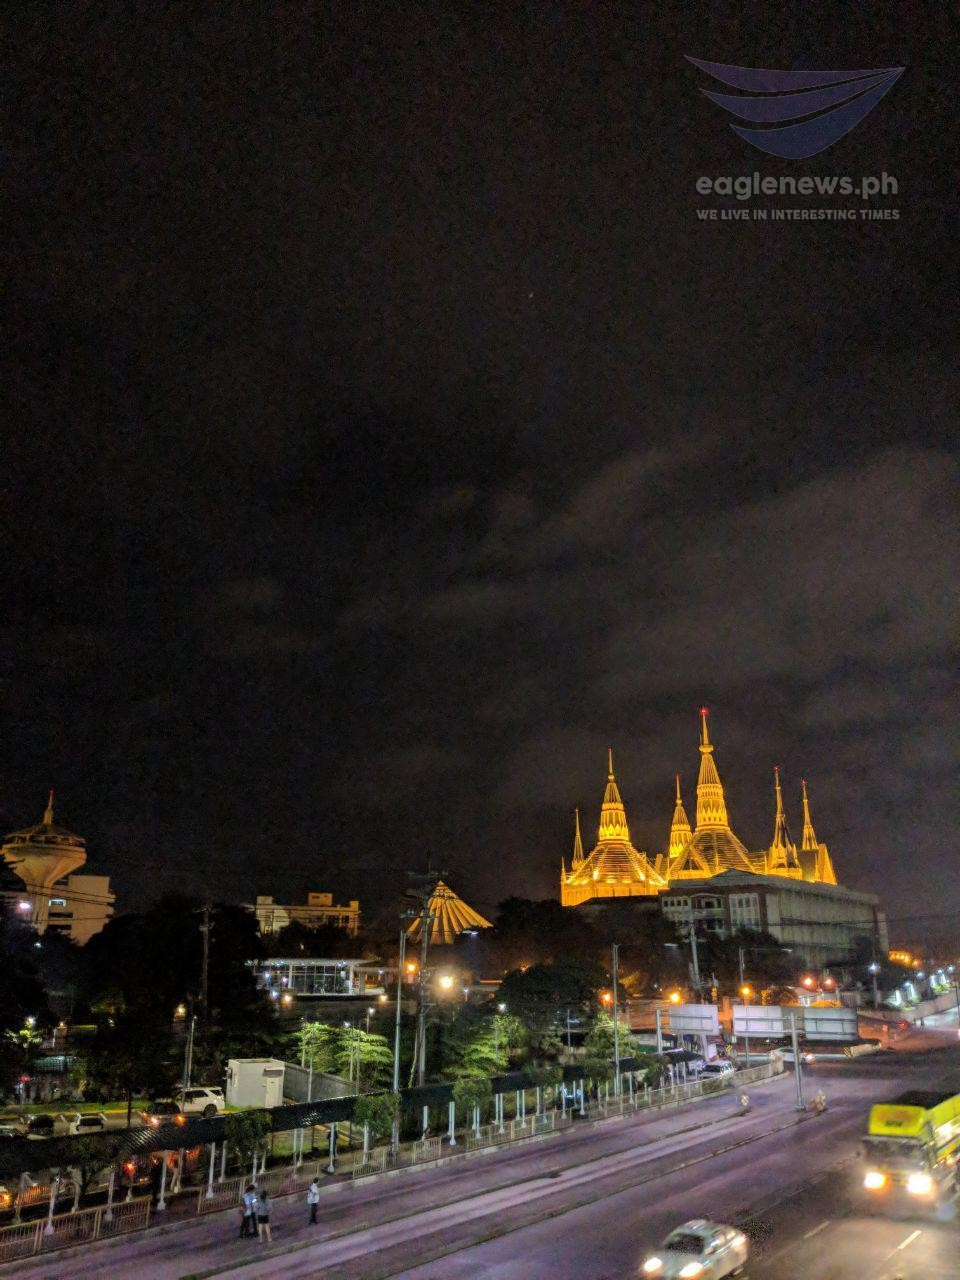 In photos:  The Iglesia Ni Cristo Central Temple like a brilliant jewel in the night sky